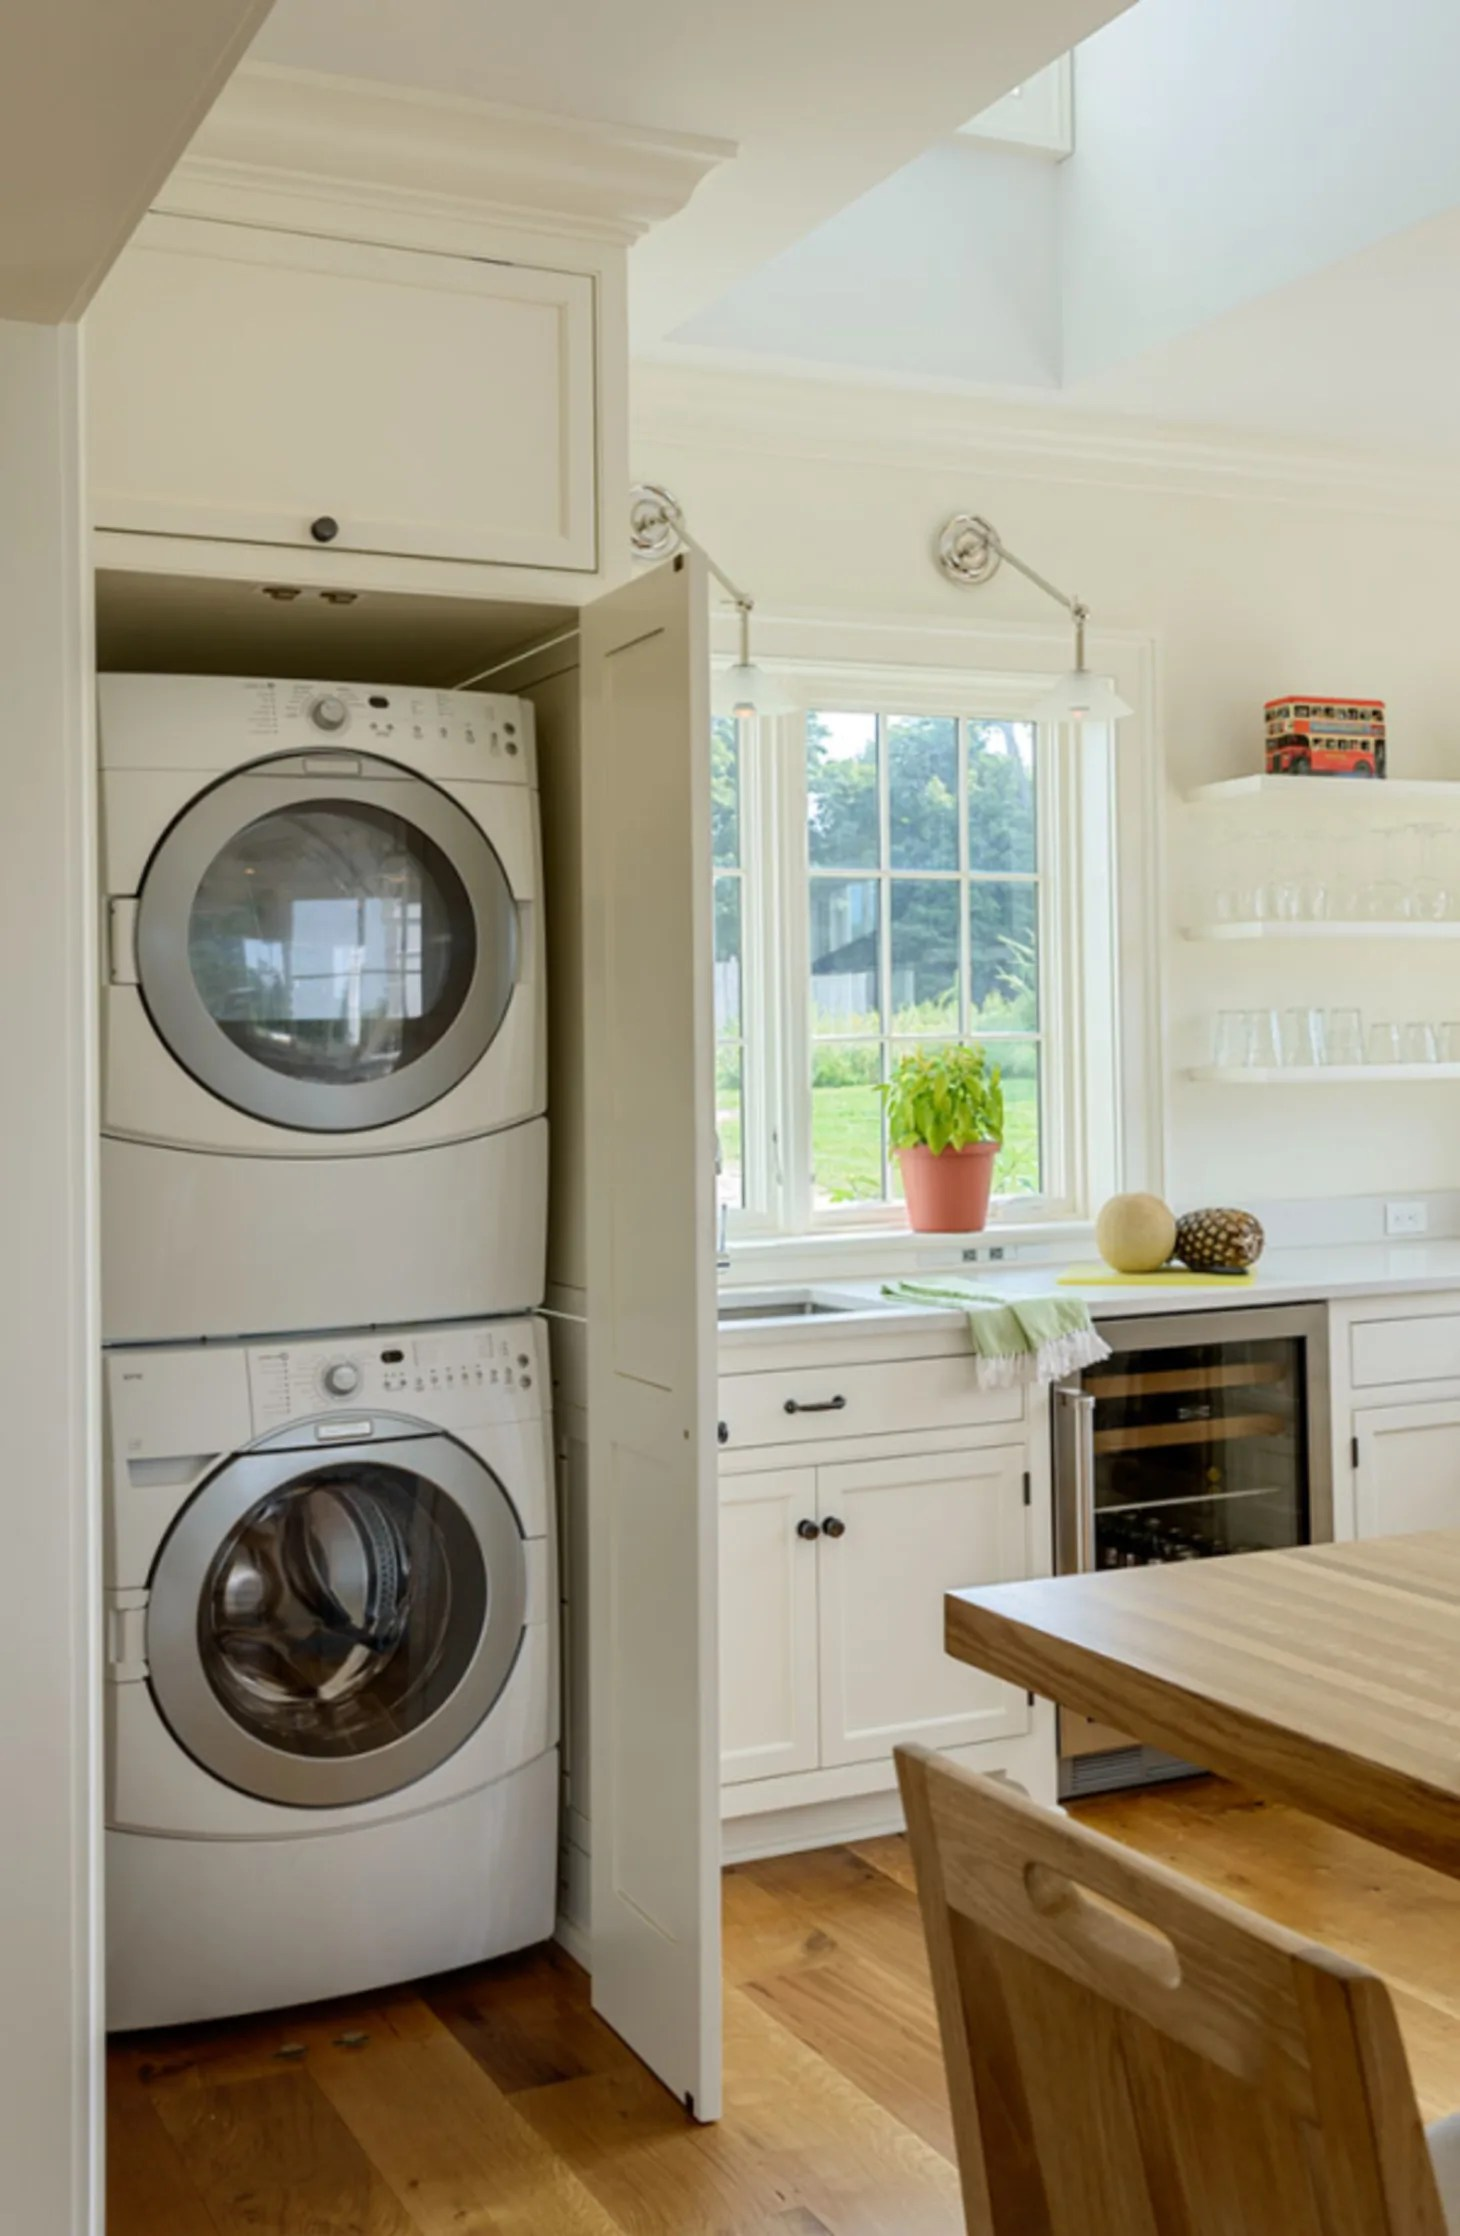 Small Laundry Room Remodeling Ideas   Apartment Therapy on Small Space Small Bathroom Ideas With Washing Machine id=15614